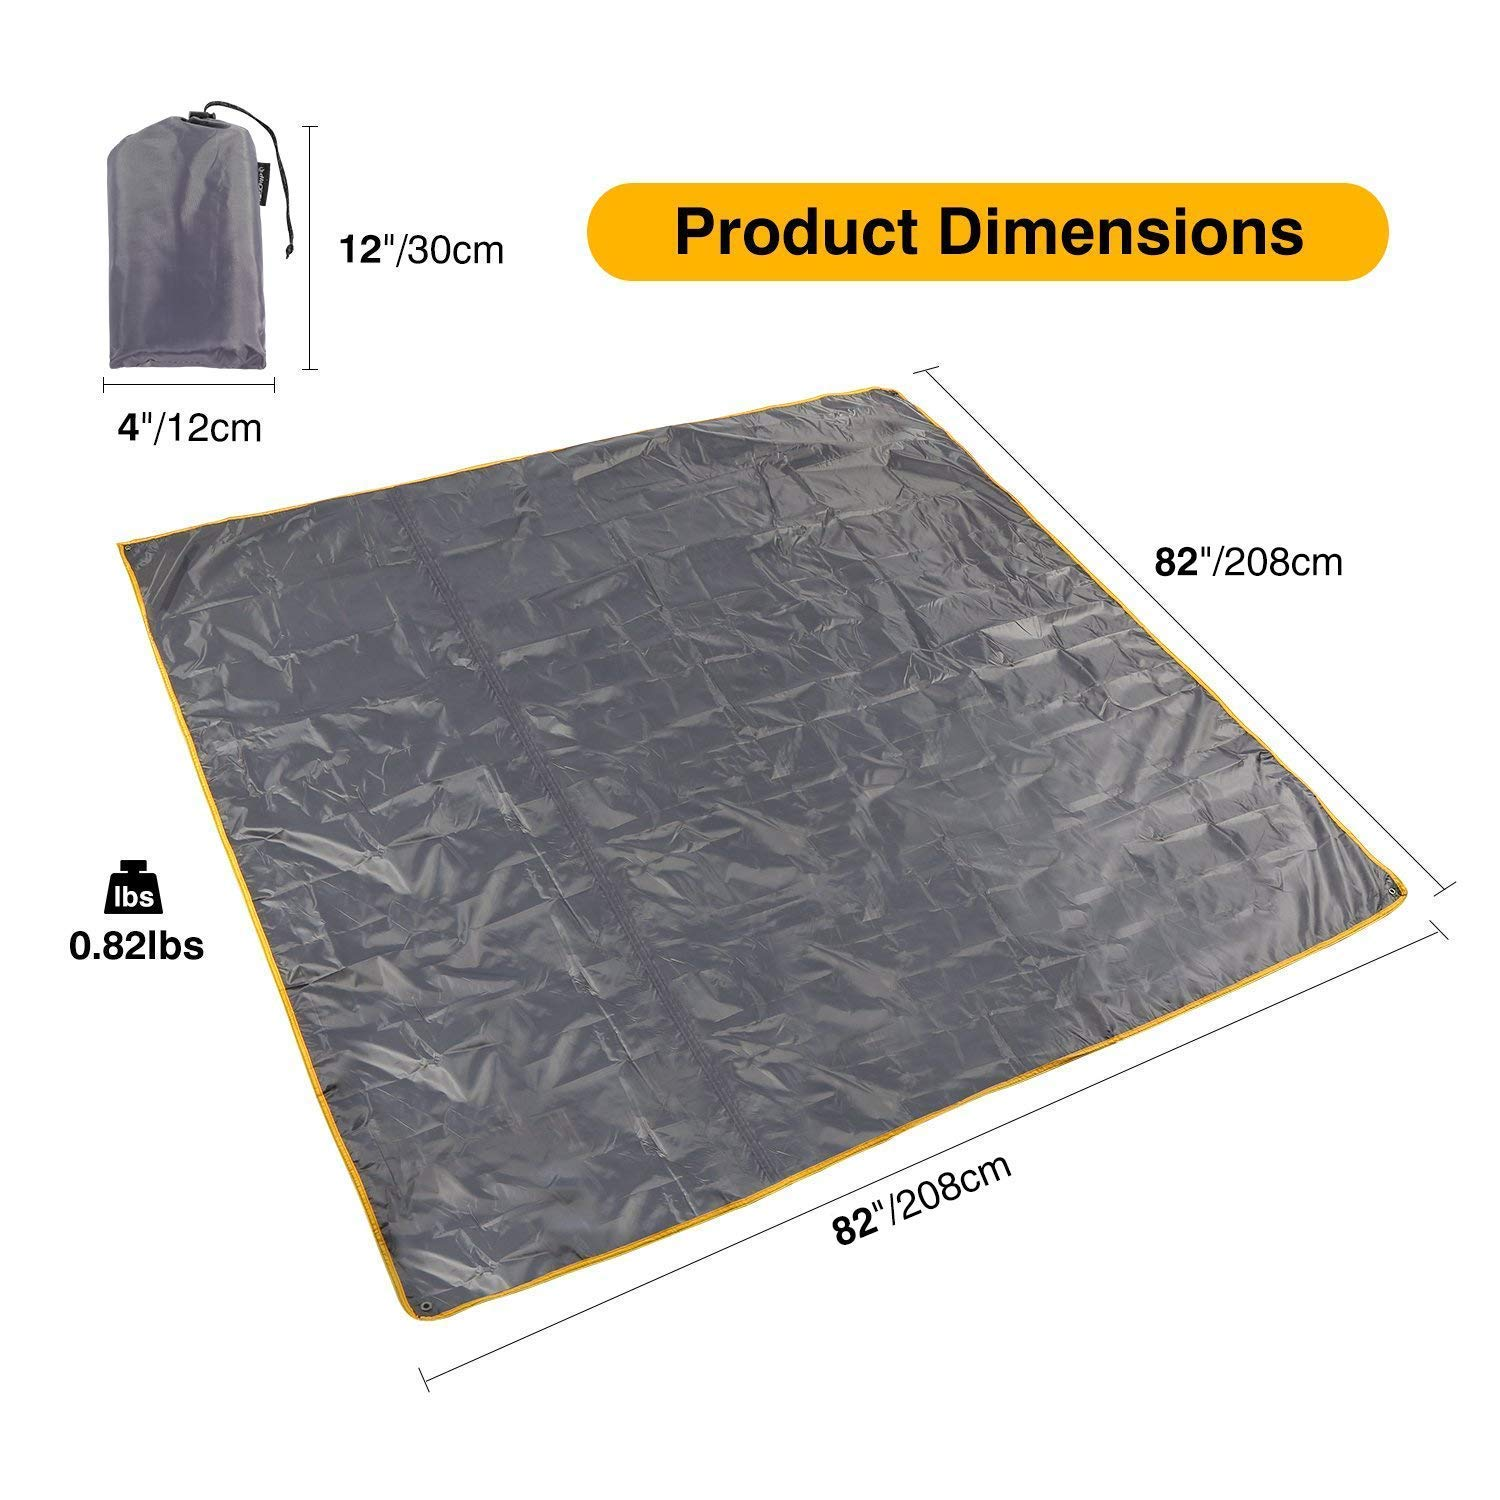 4 in 1 Tent Footprint Multifunctional for Camping Hiking Survival Tarp Lightweight Compact REDCAMP Waterproof Camping Tent Tarp 90//140//180//210//240//270//300cm